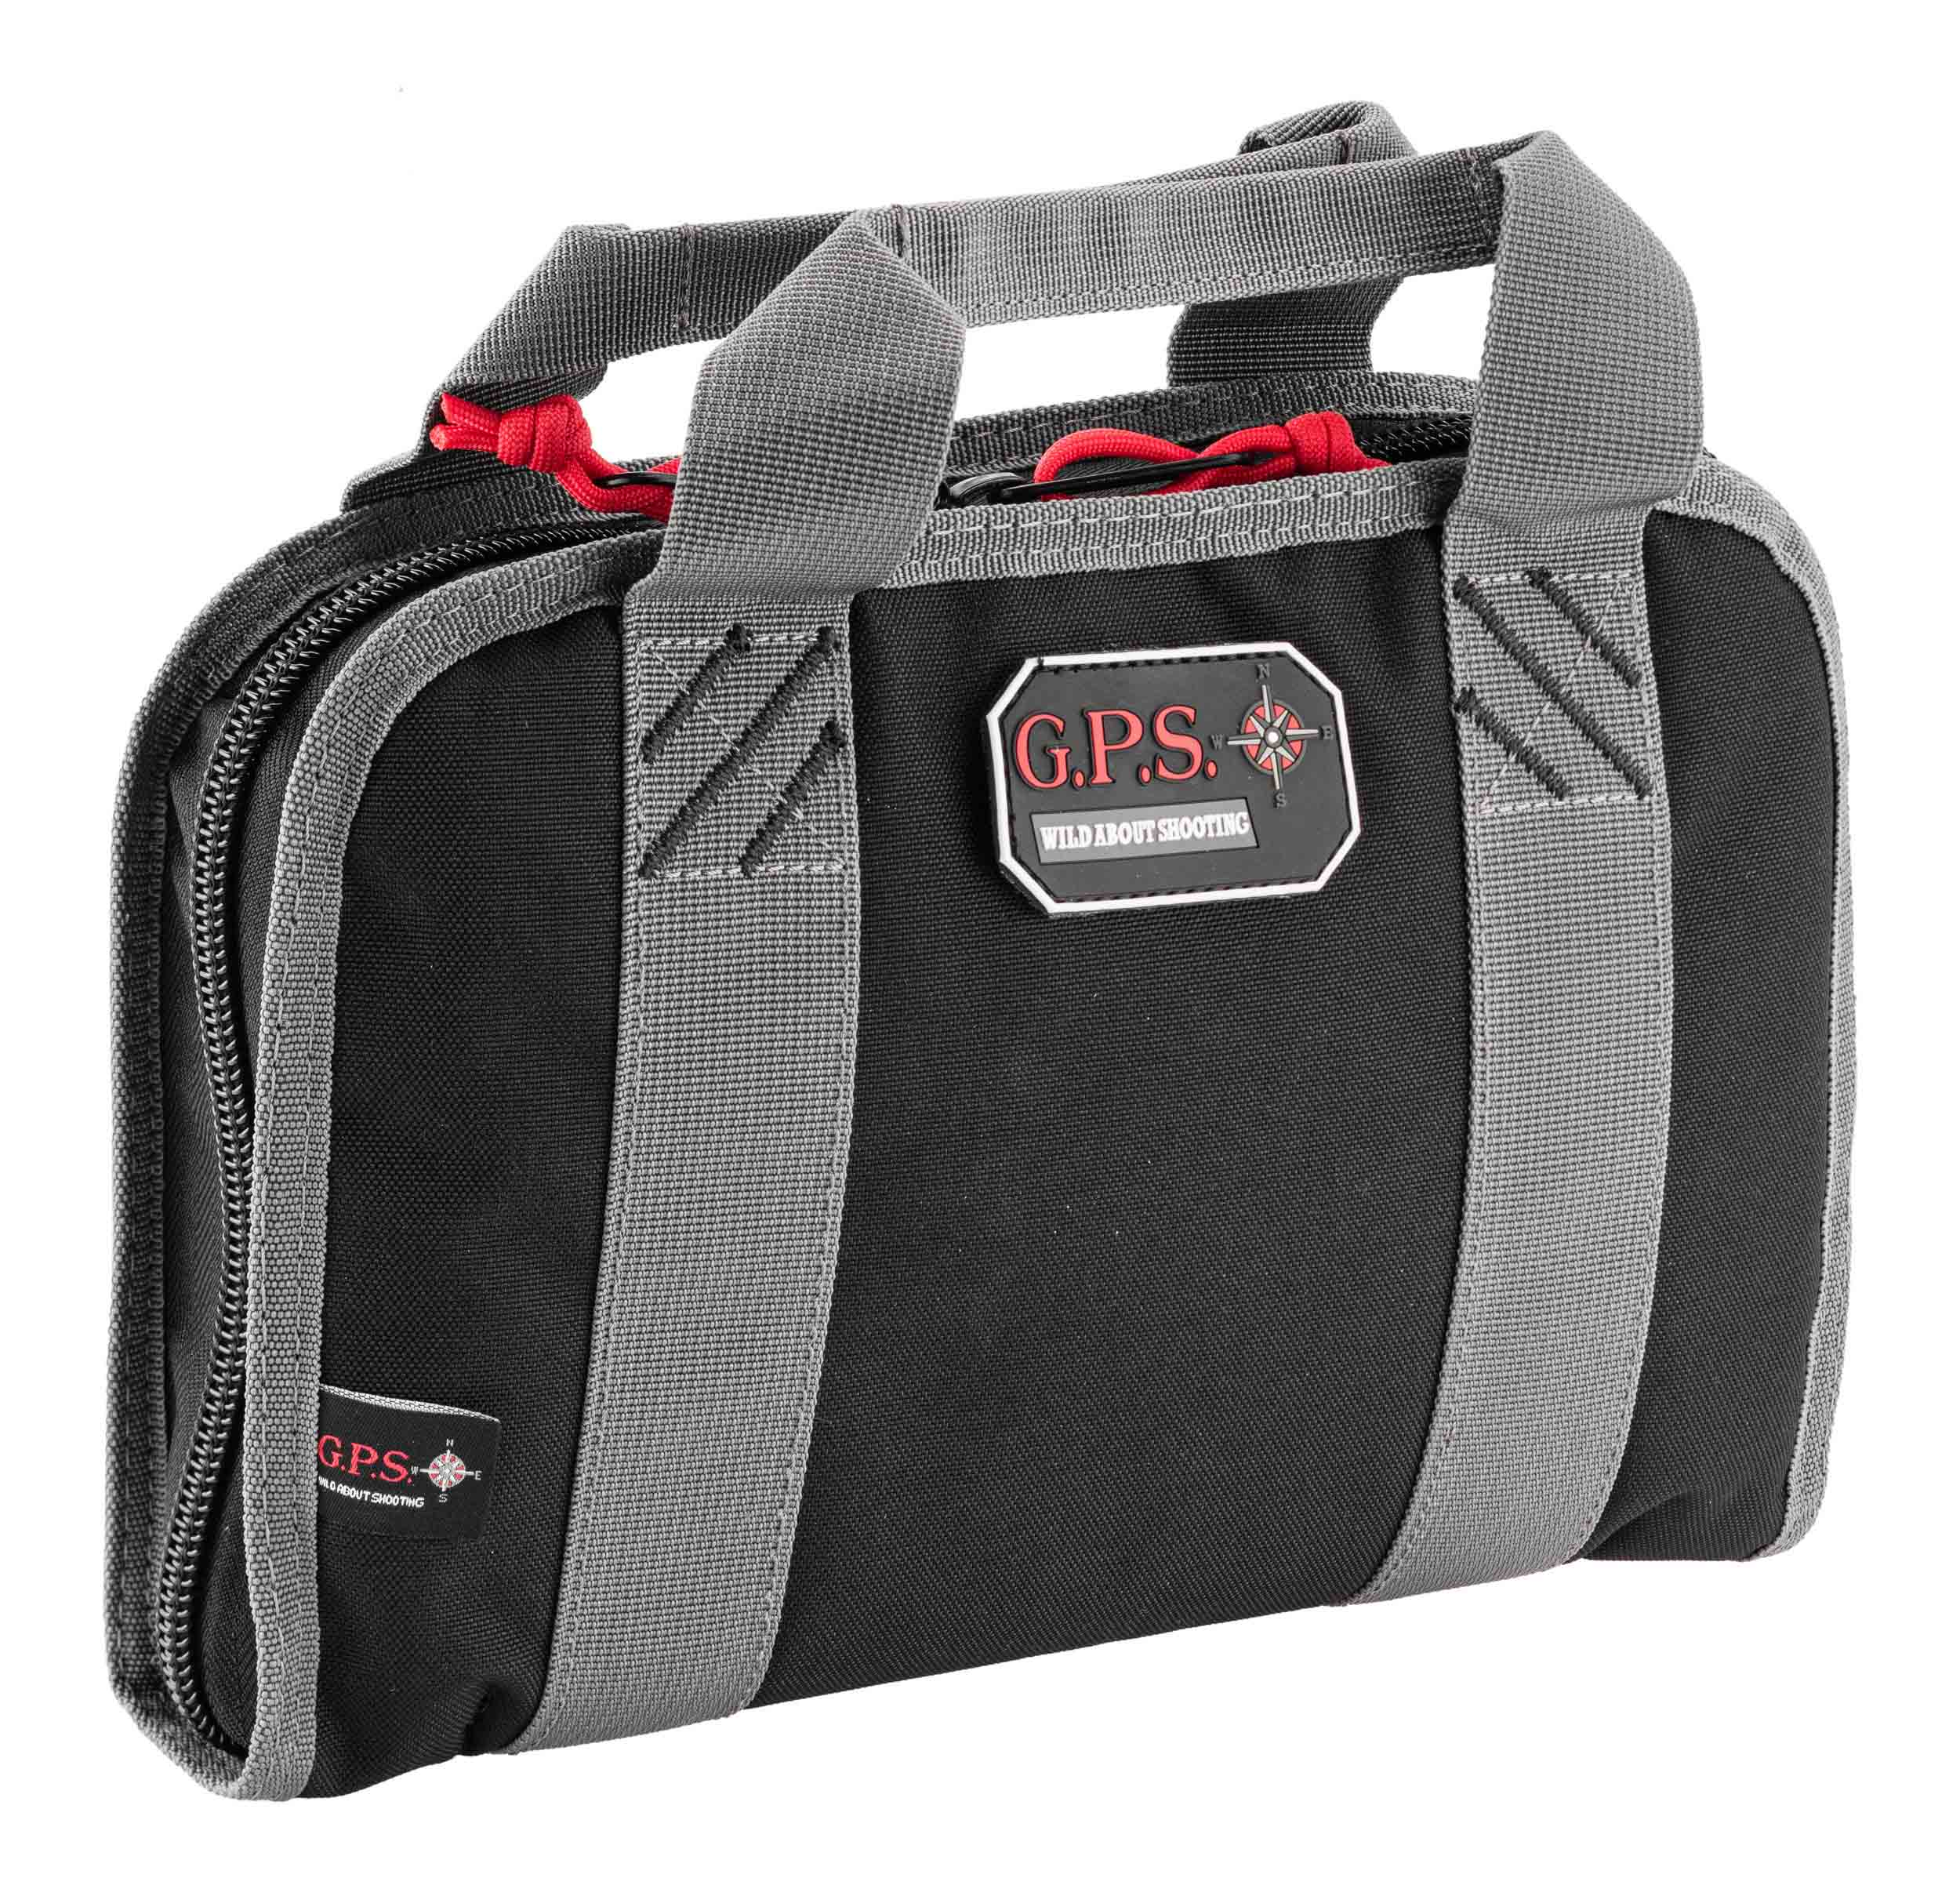 GPS160 Sac transport double arme de poing G OUTDOORS - GPS160